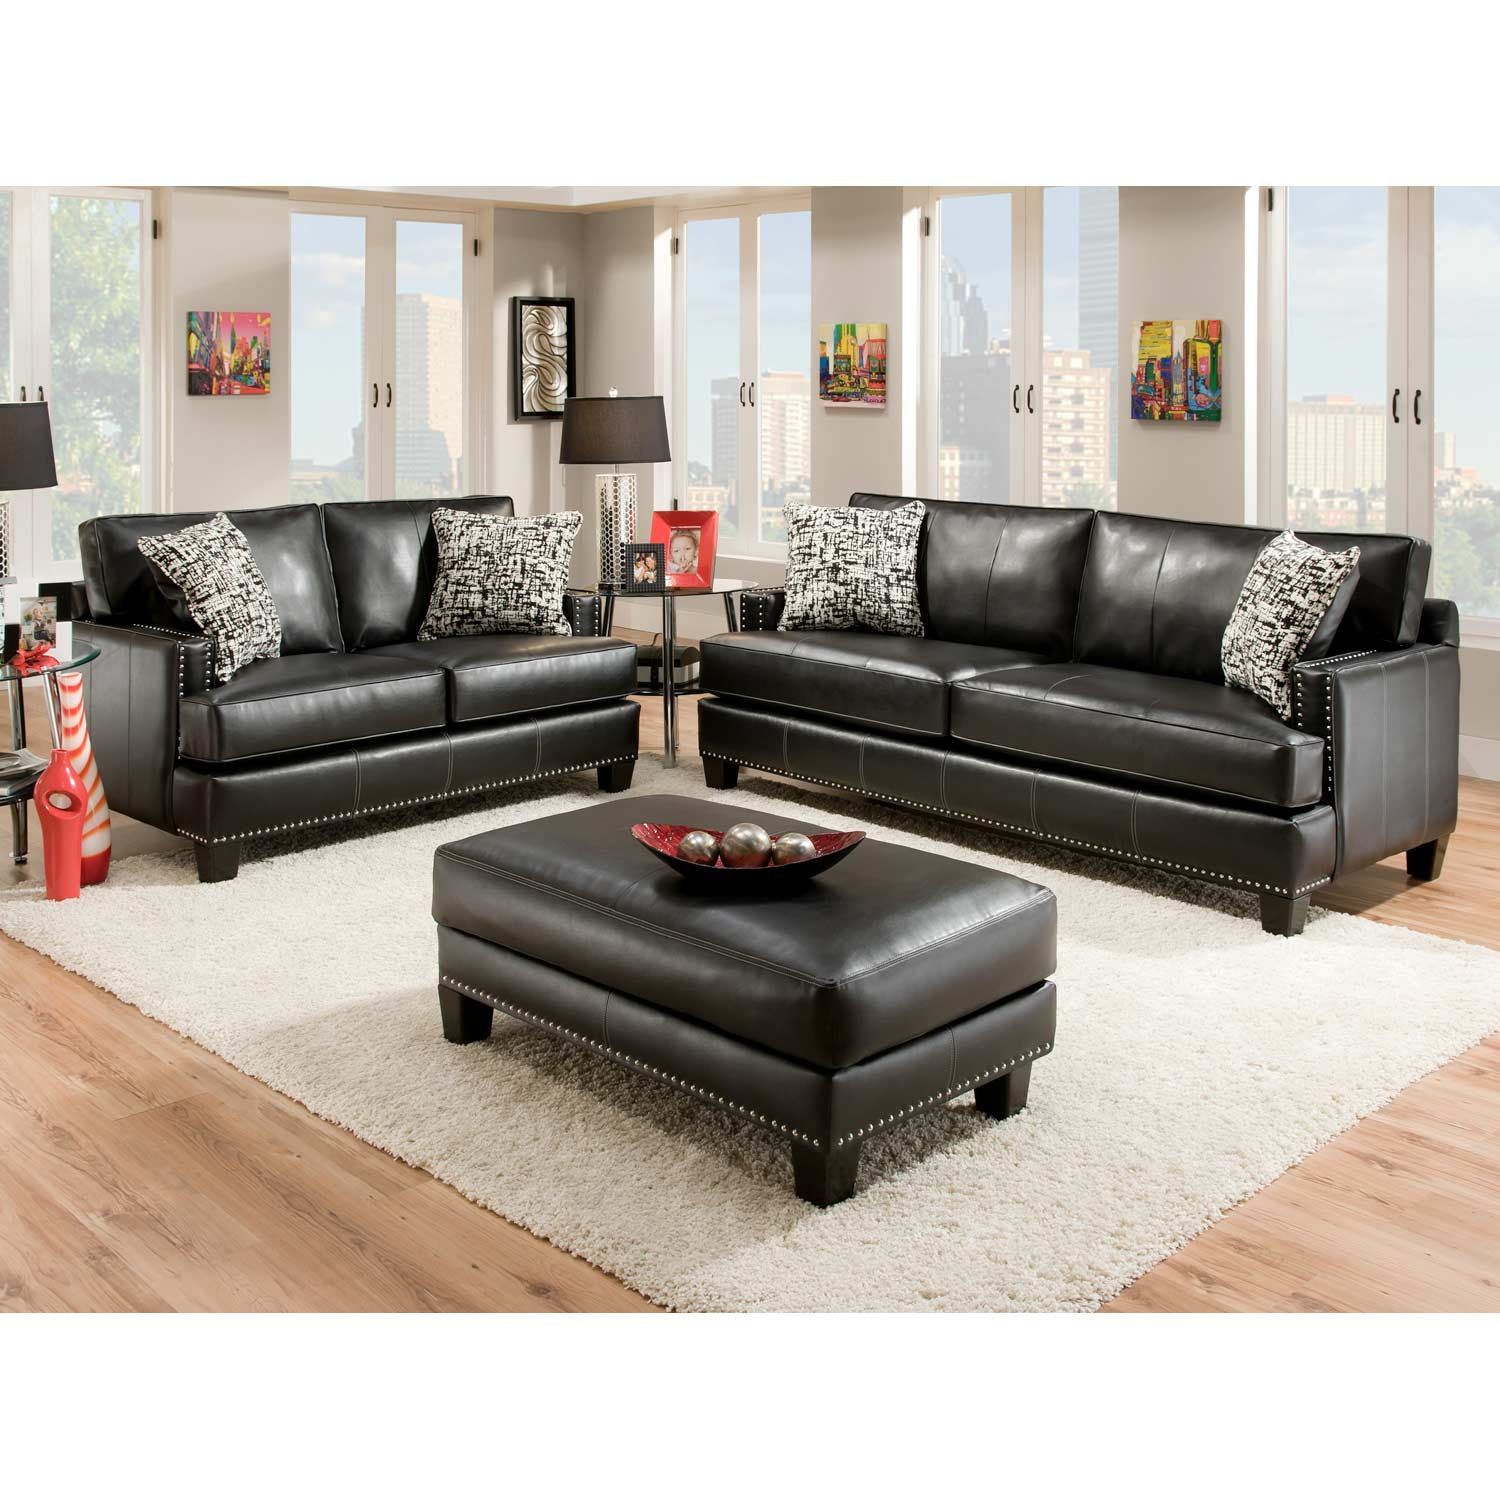 Kimberly Ottoman - Nail Heads, Apache Black Leather - CHF-8706